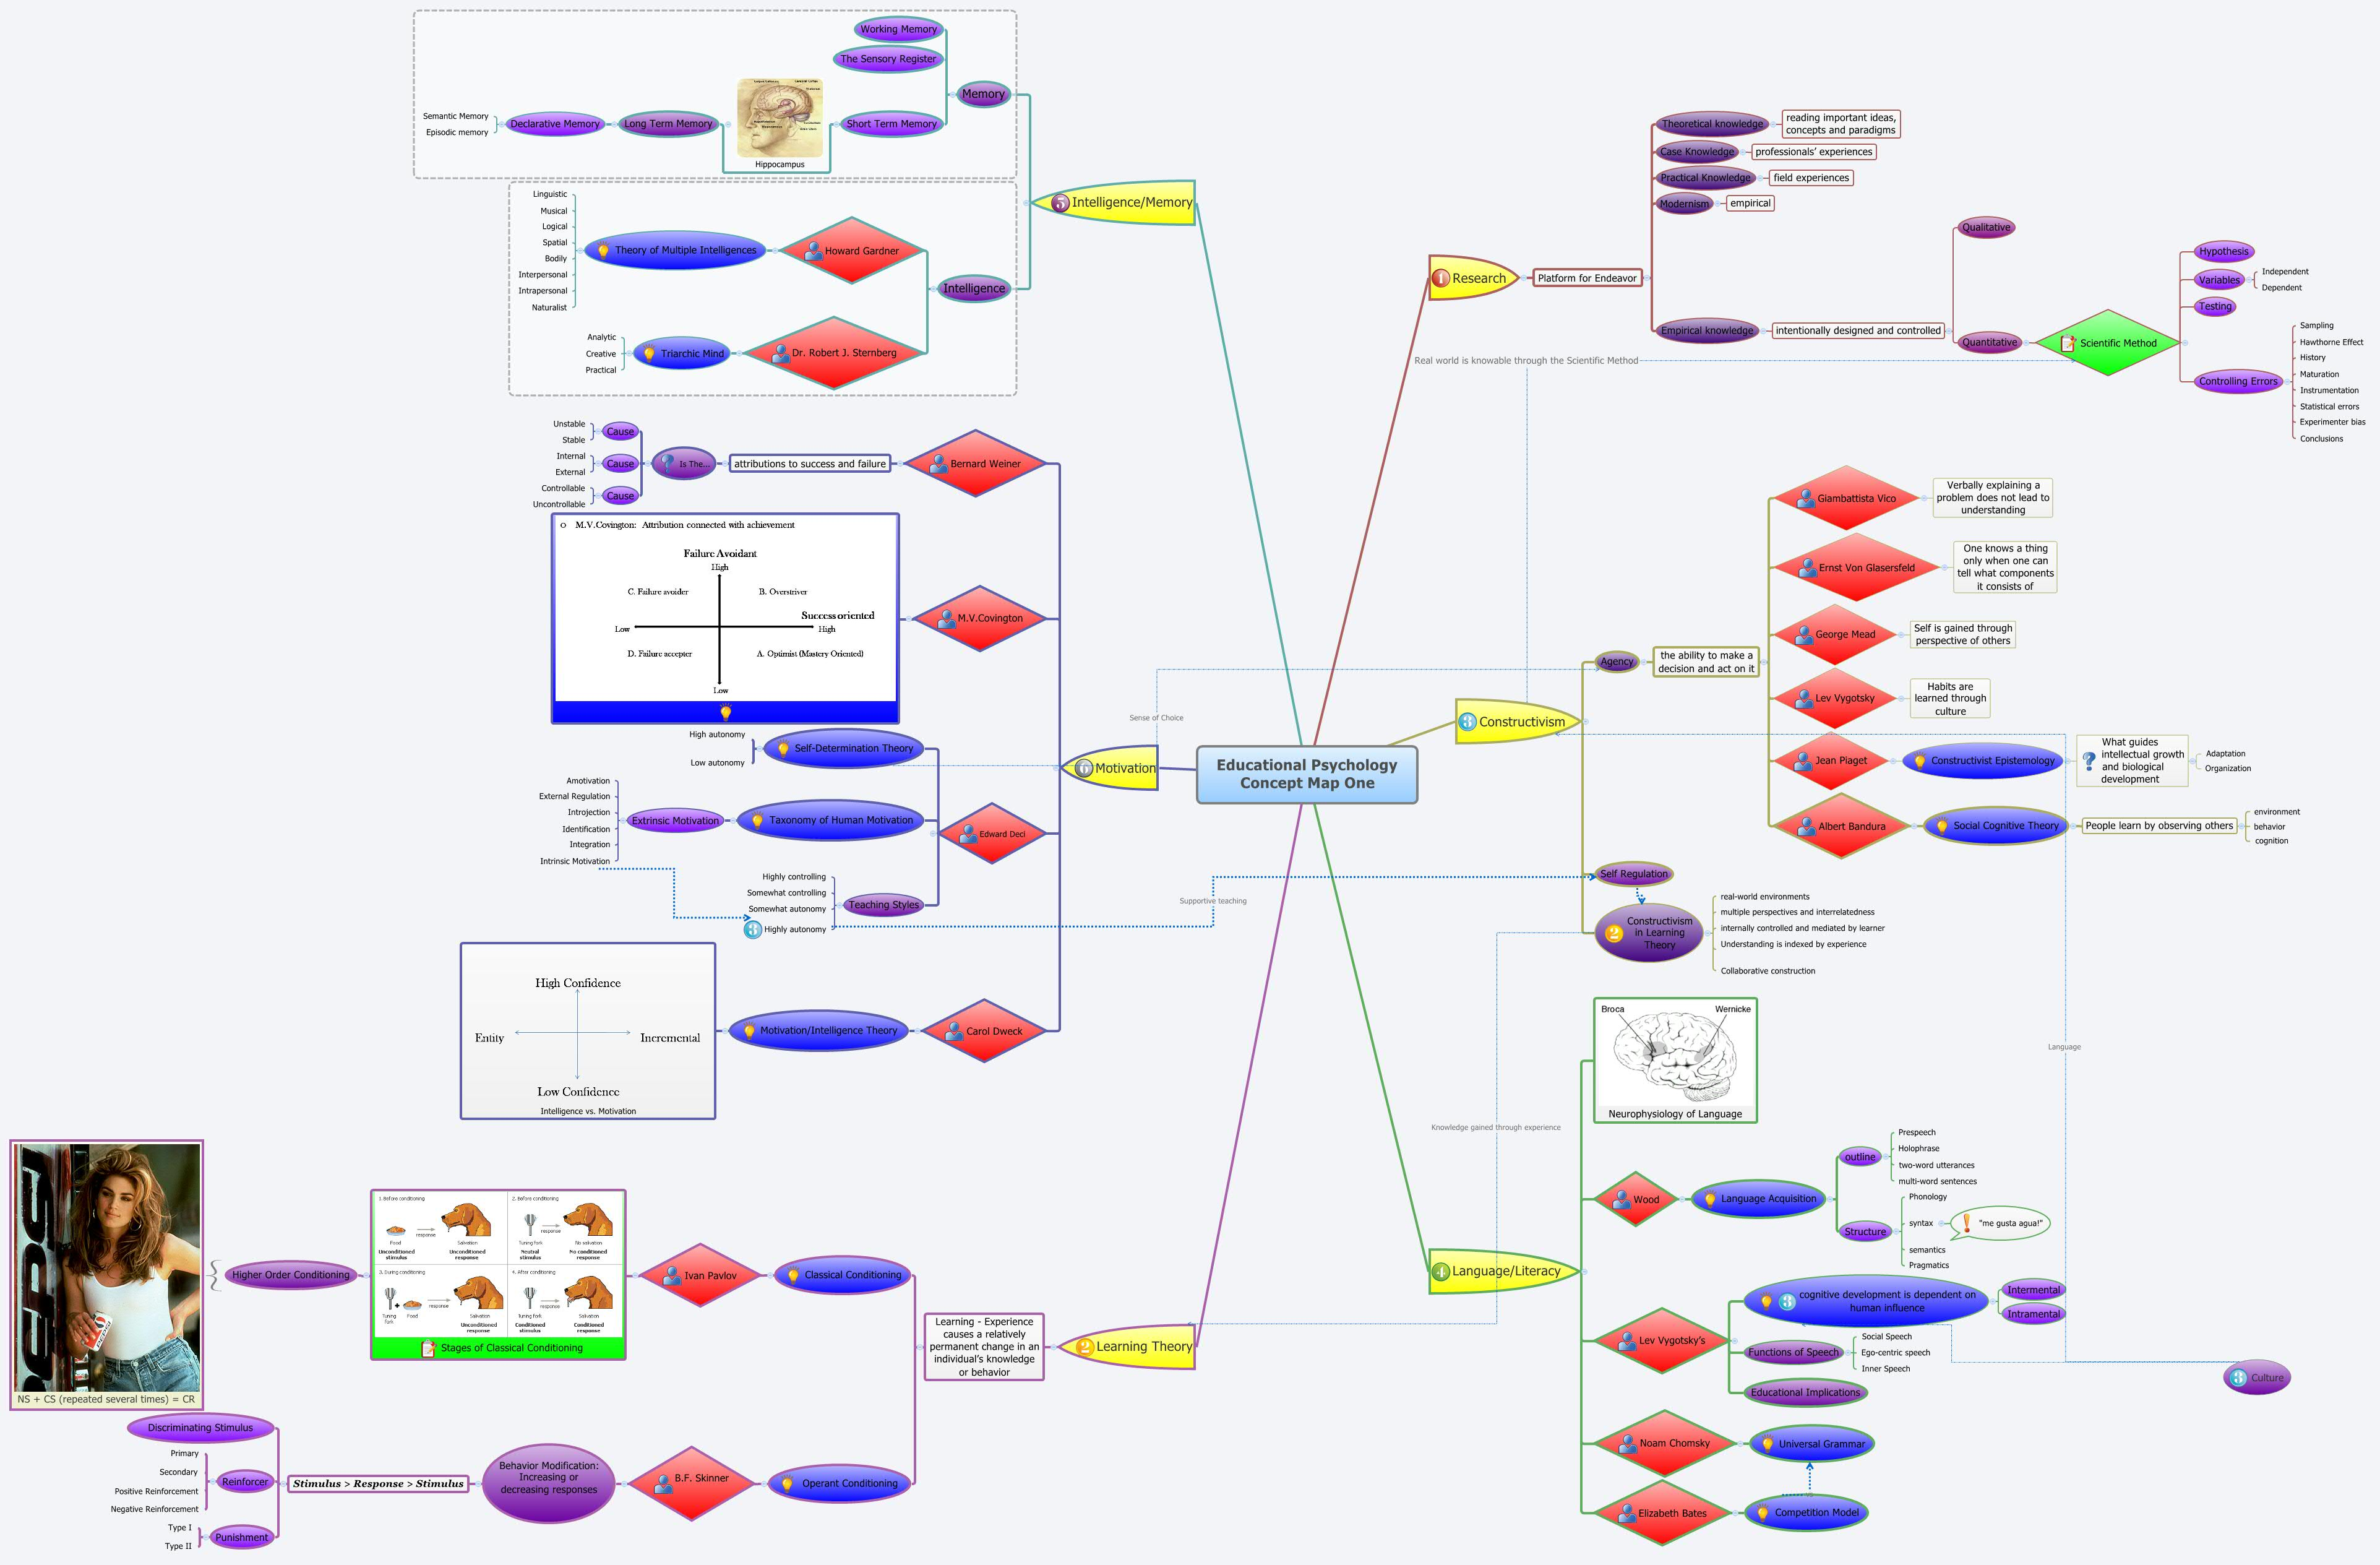 Educational Psychology Concept Map One   XMind   Mind Mapping Software